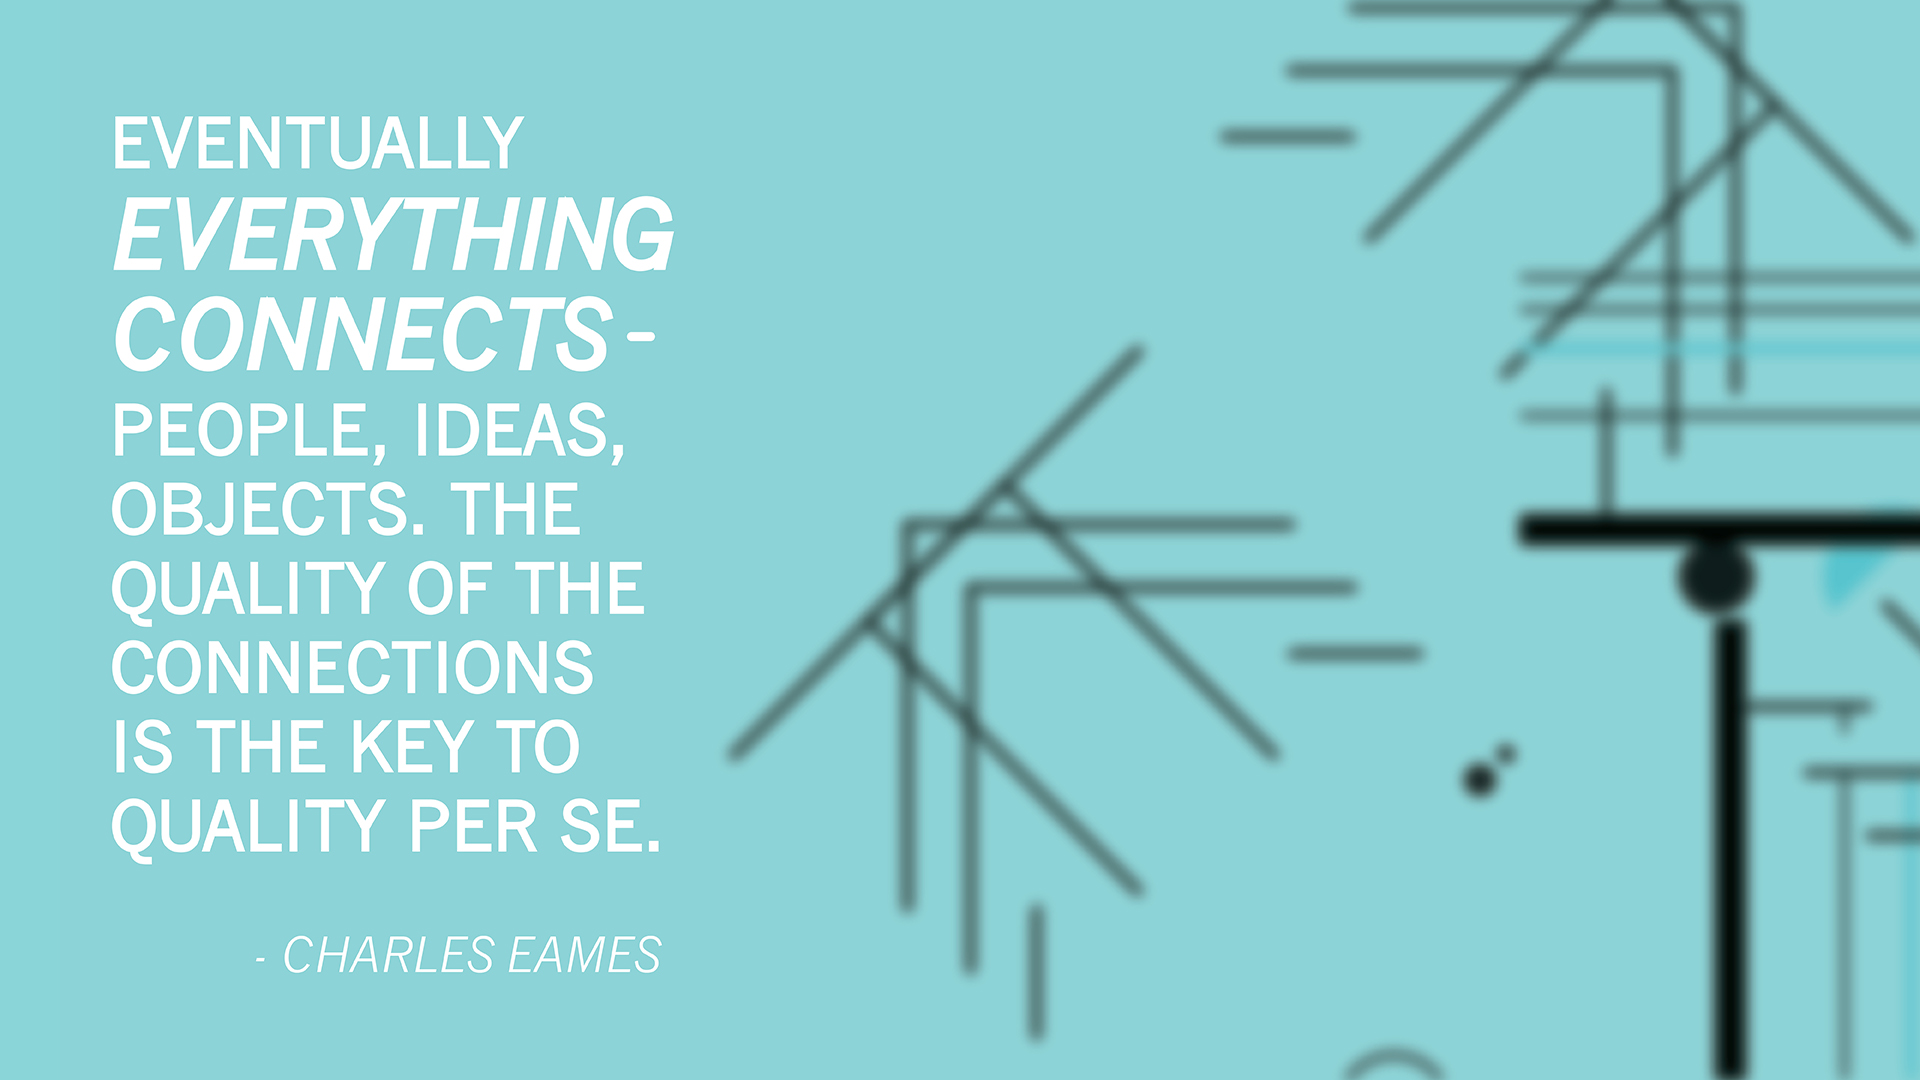 Eventually everything connects - people, ideas, objects. The quality of the connections is the key to quality per se. Charles Eames